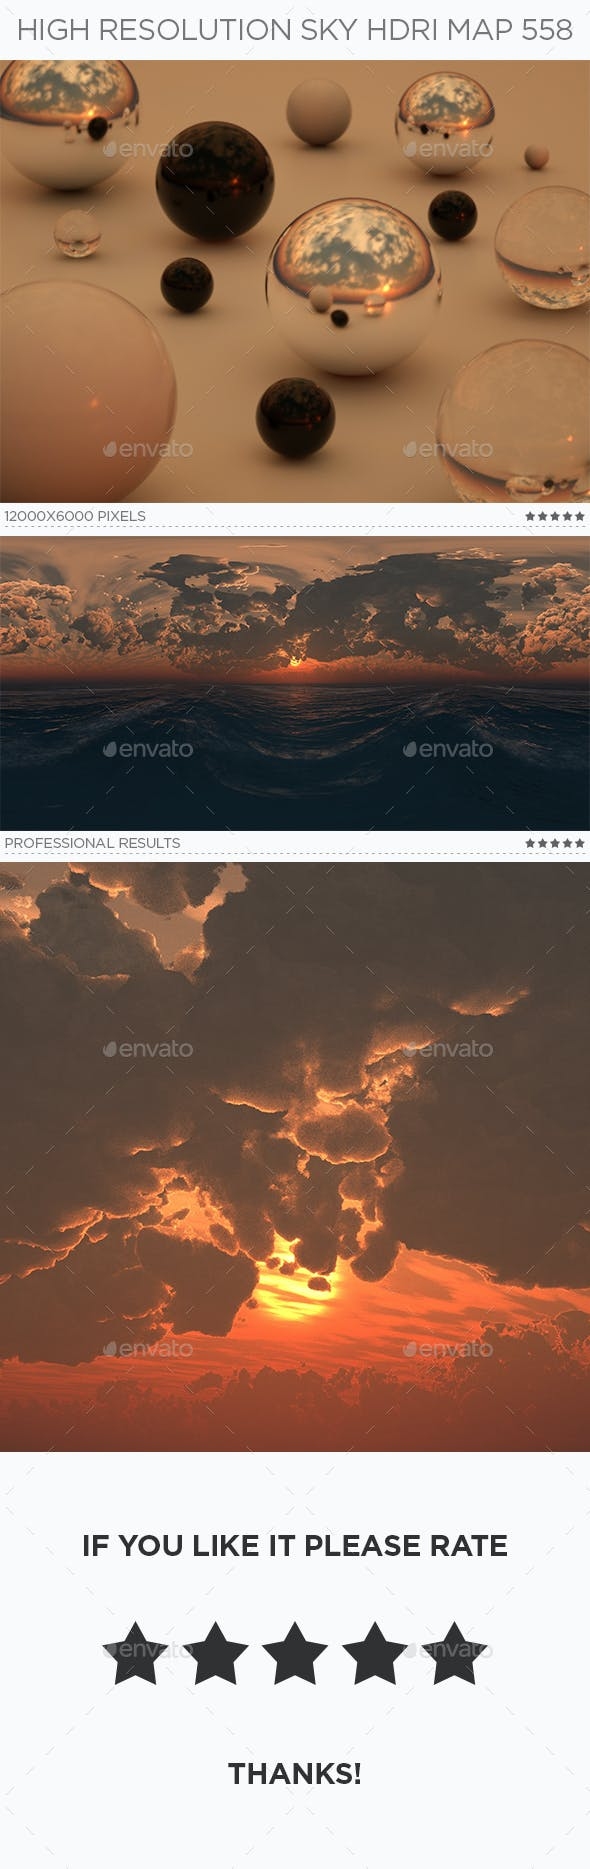 High Resolution Sky HDRi Map 558 - 3DOcean Item for Sale